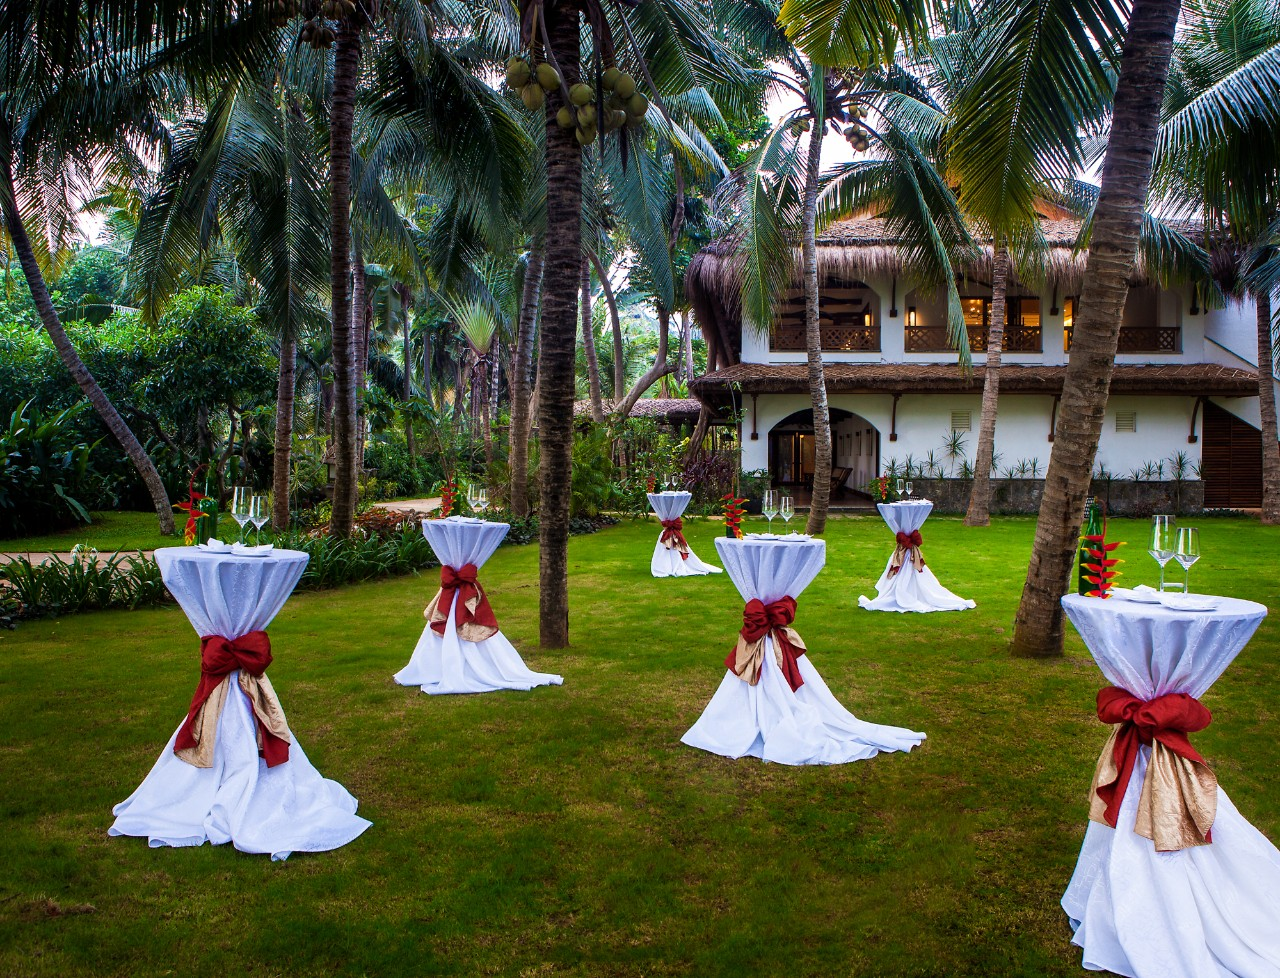 Taj Green Cove Resort facilities: